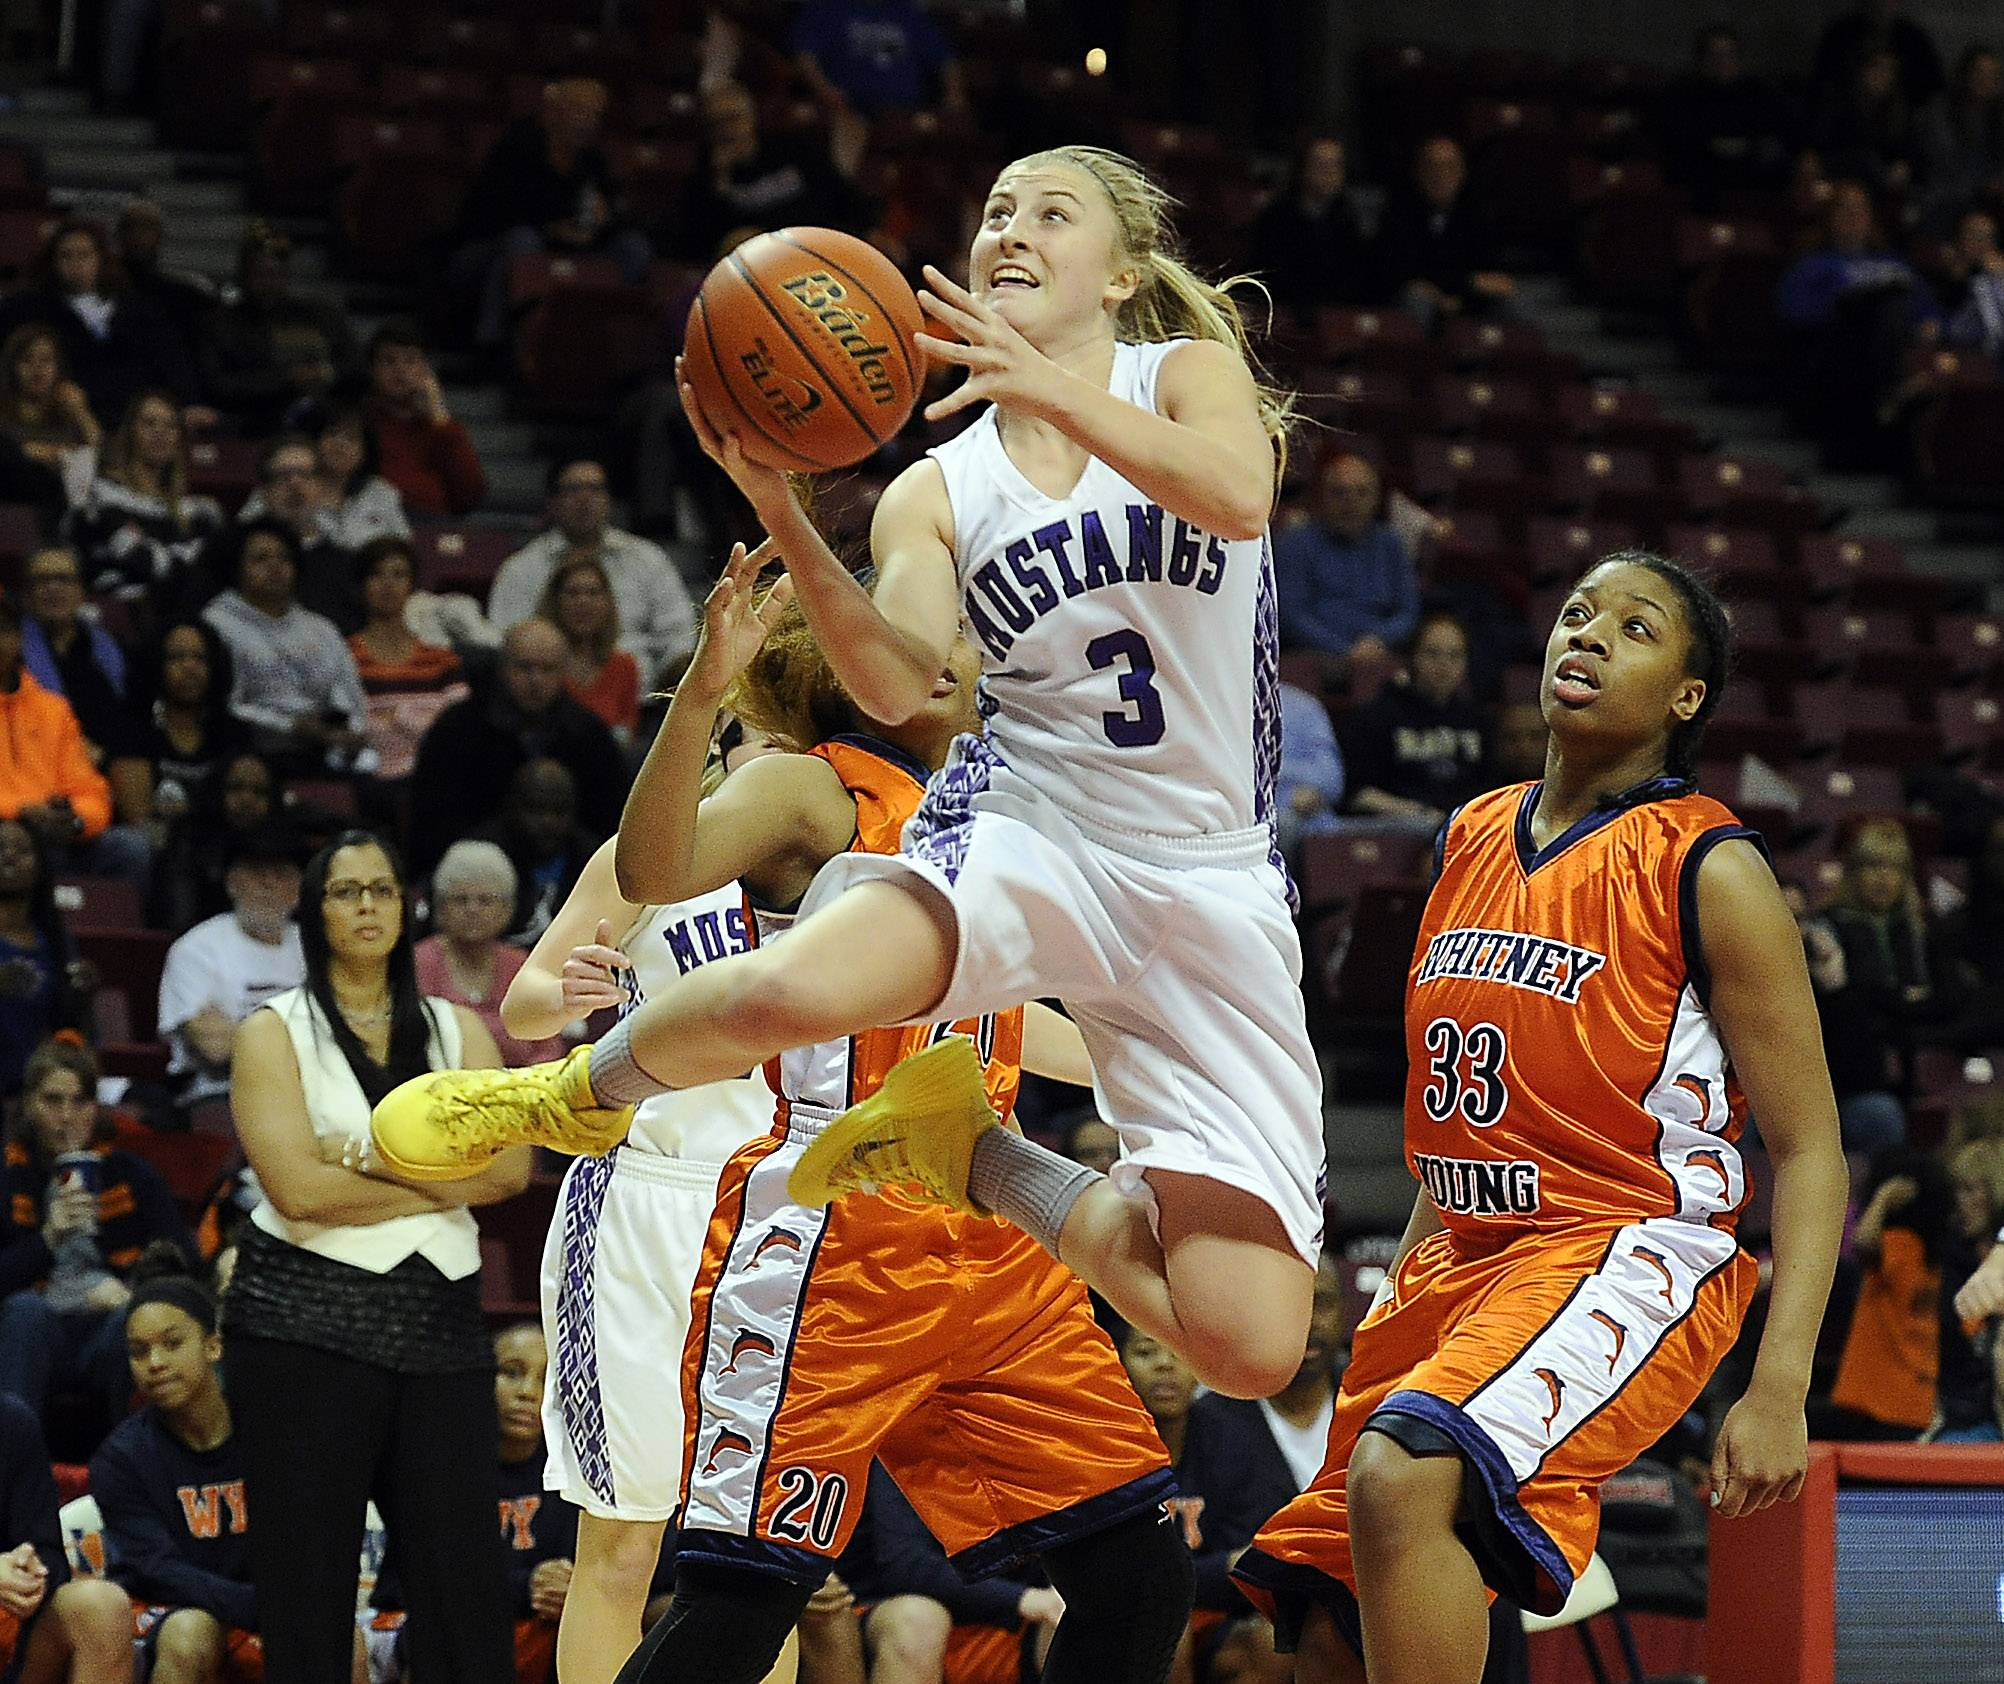 Rolling Meadows' Jackie Kemph fliess through the air past Whitney Young defenders in the Class 4A championship game in Normal.